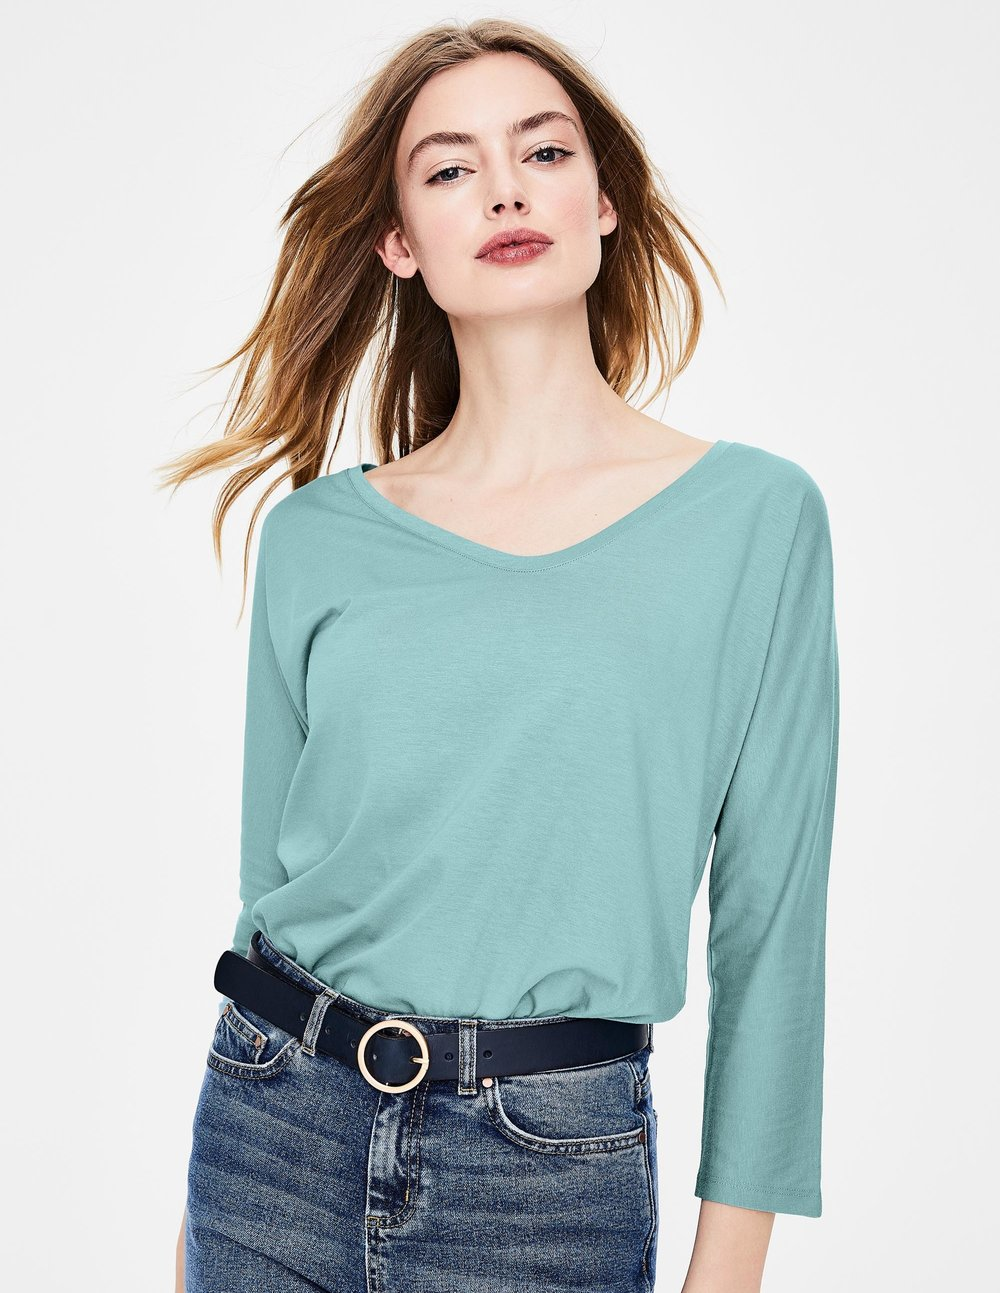 SUPERSOFT VOOP TEE. Available in multiple colors. Boden. Was $38.00. Now $26.60 To $38.00